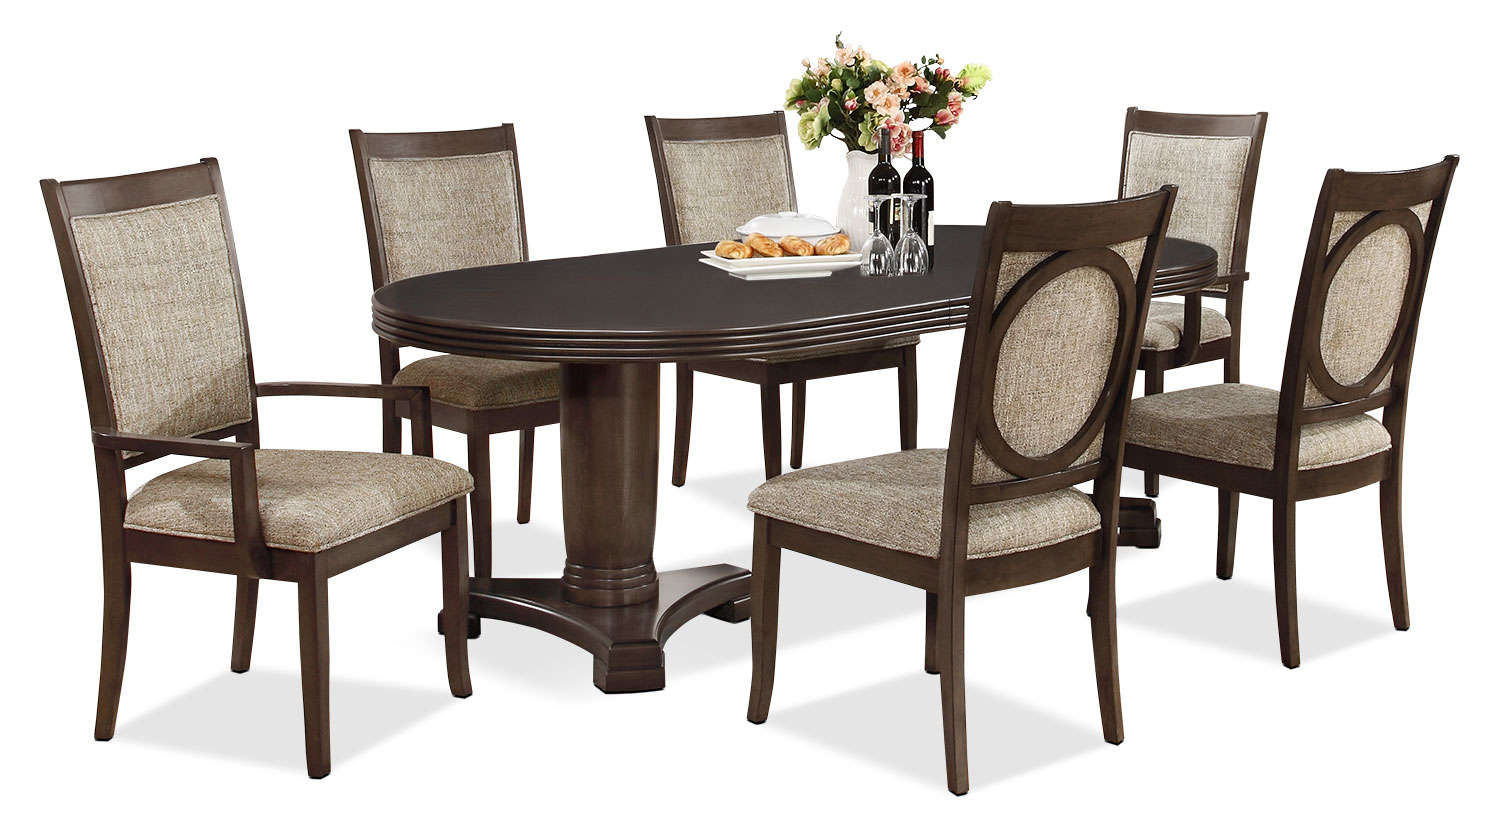 Dining Room Furniture - Beaumont 7-Piece Dining Package